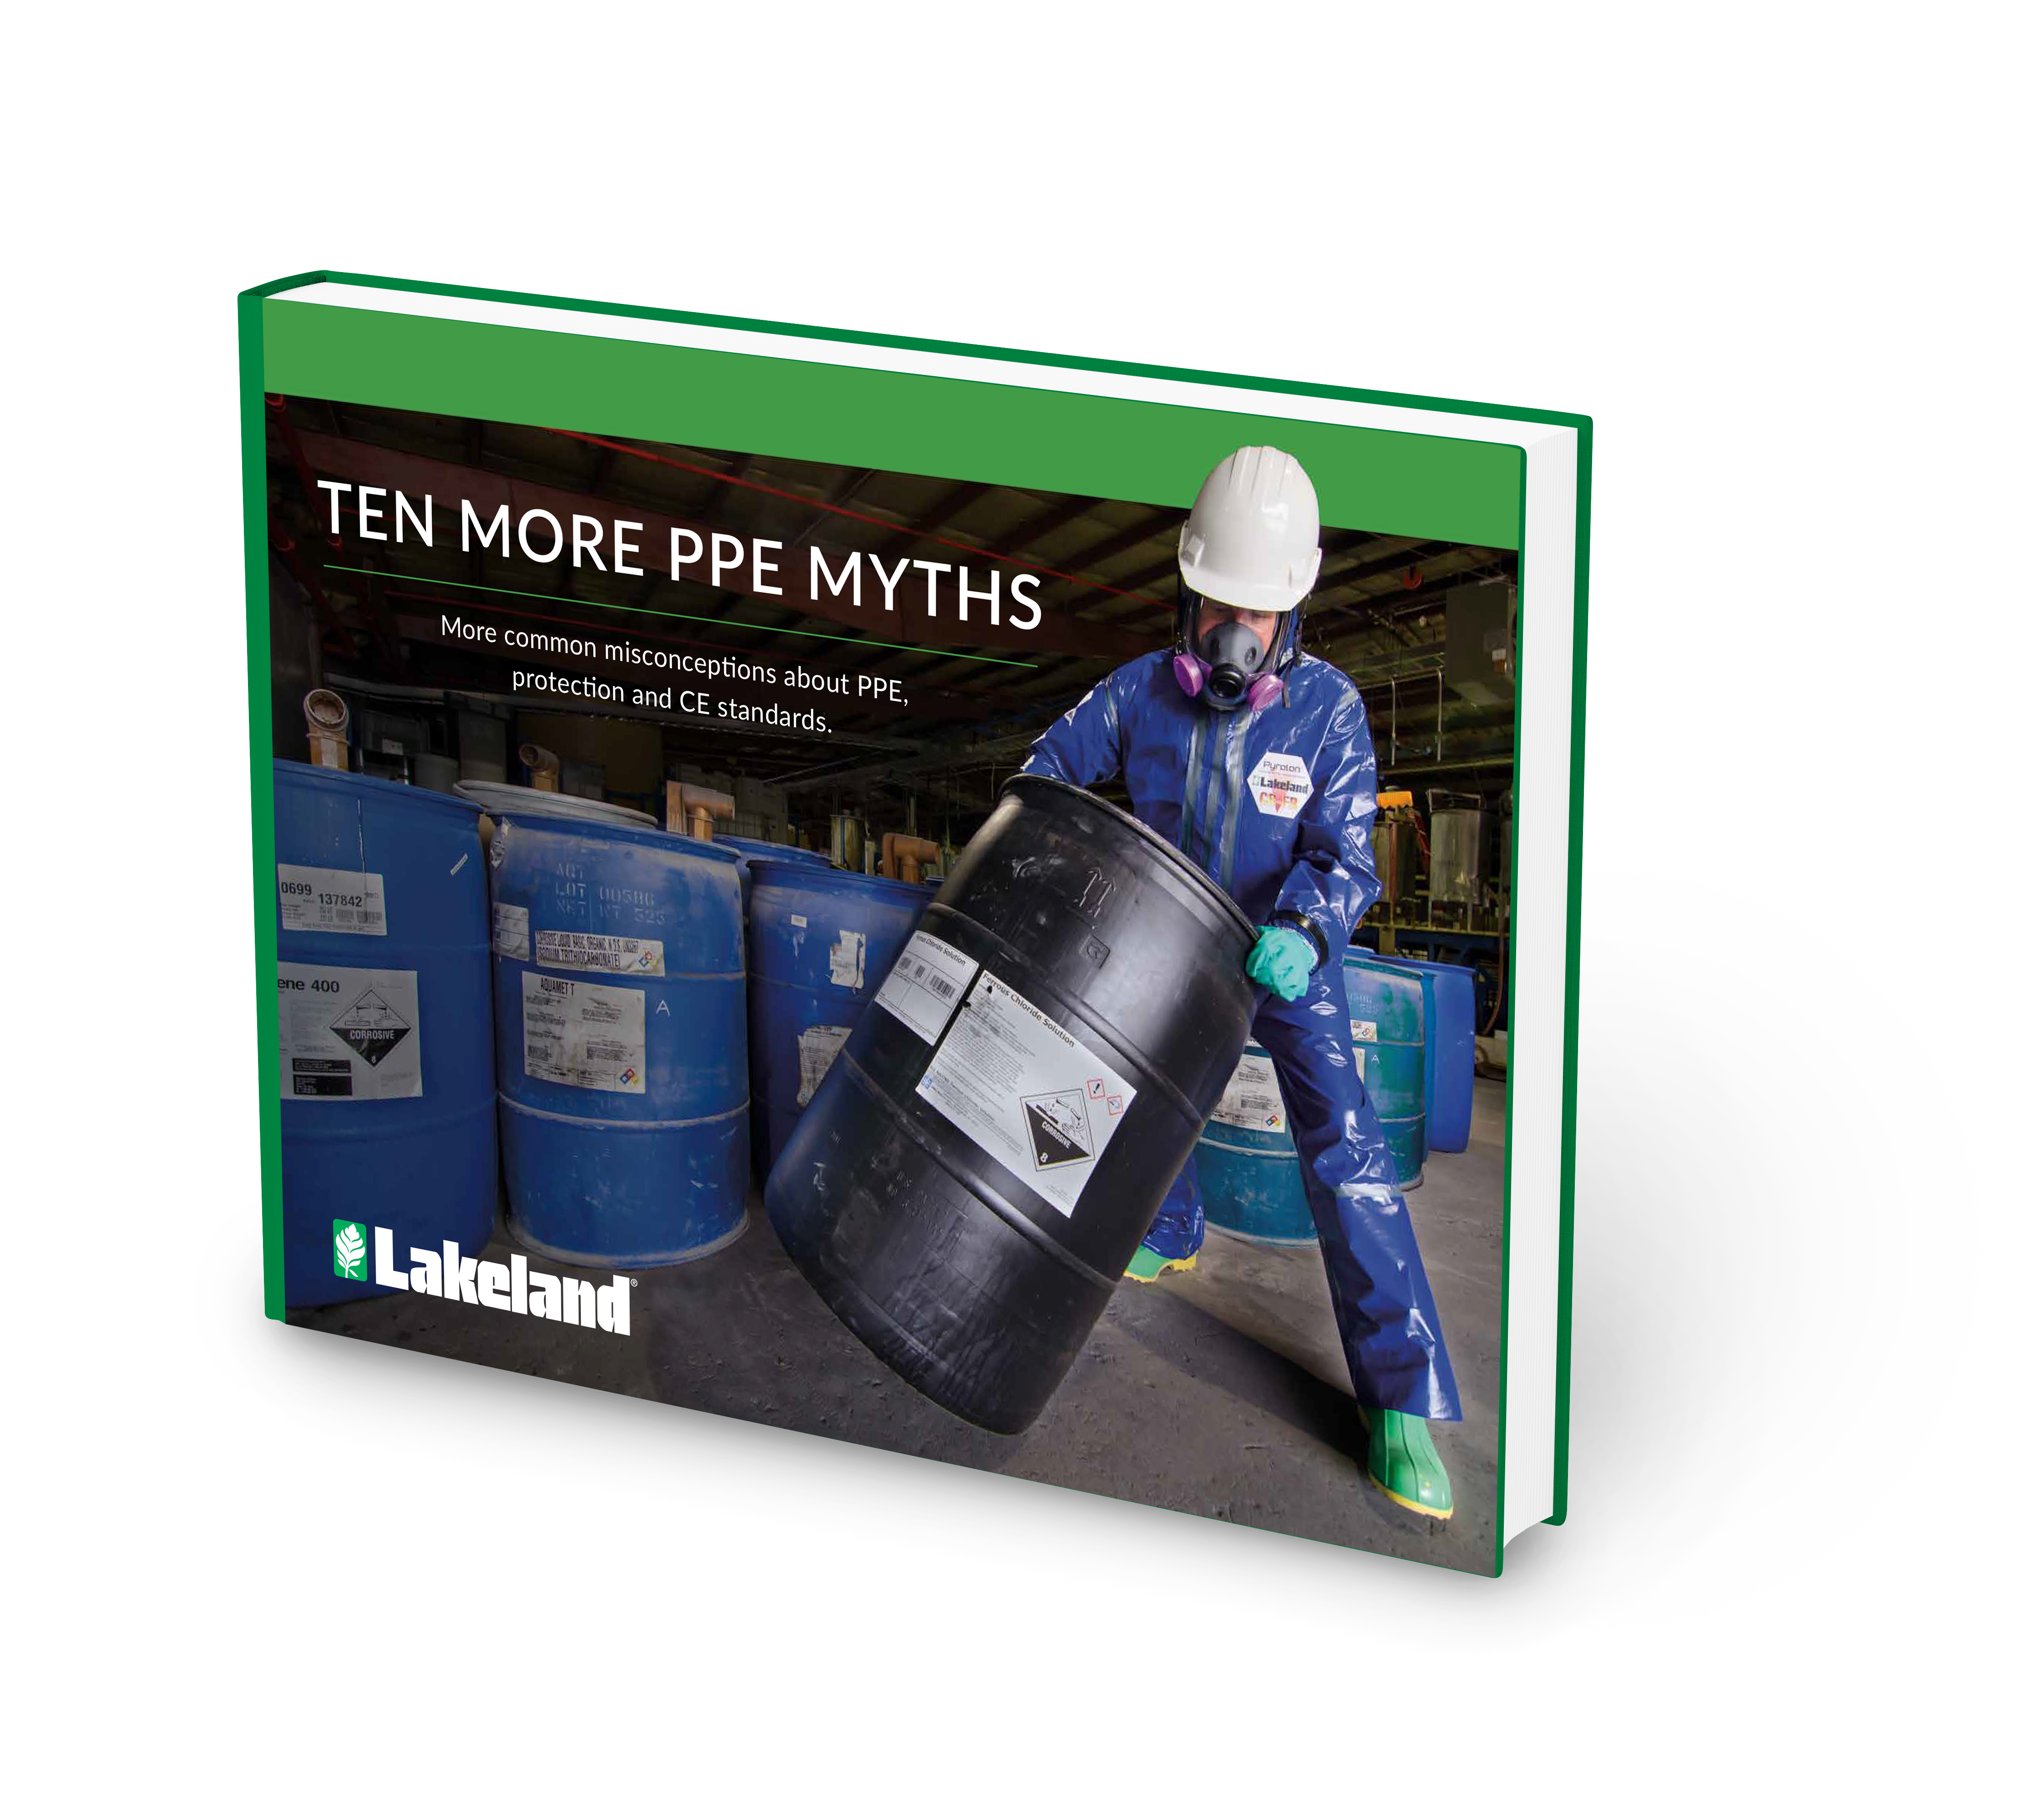 10 More PPE Myths graphic